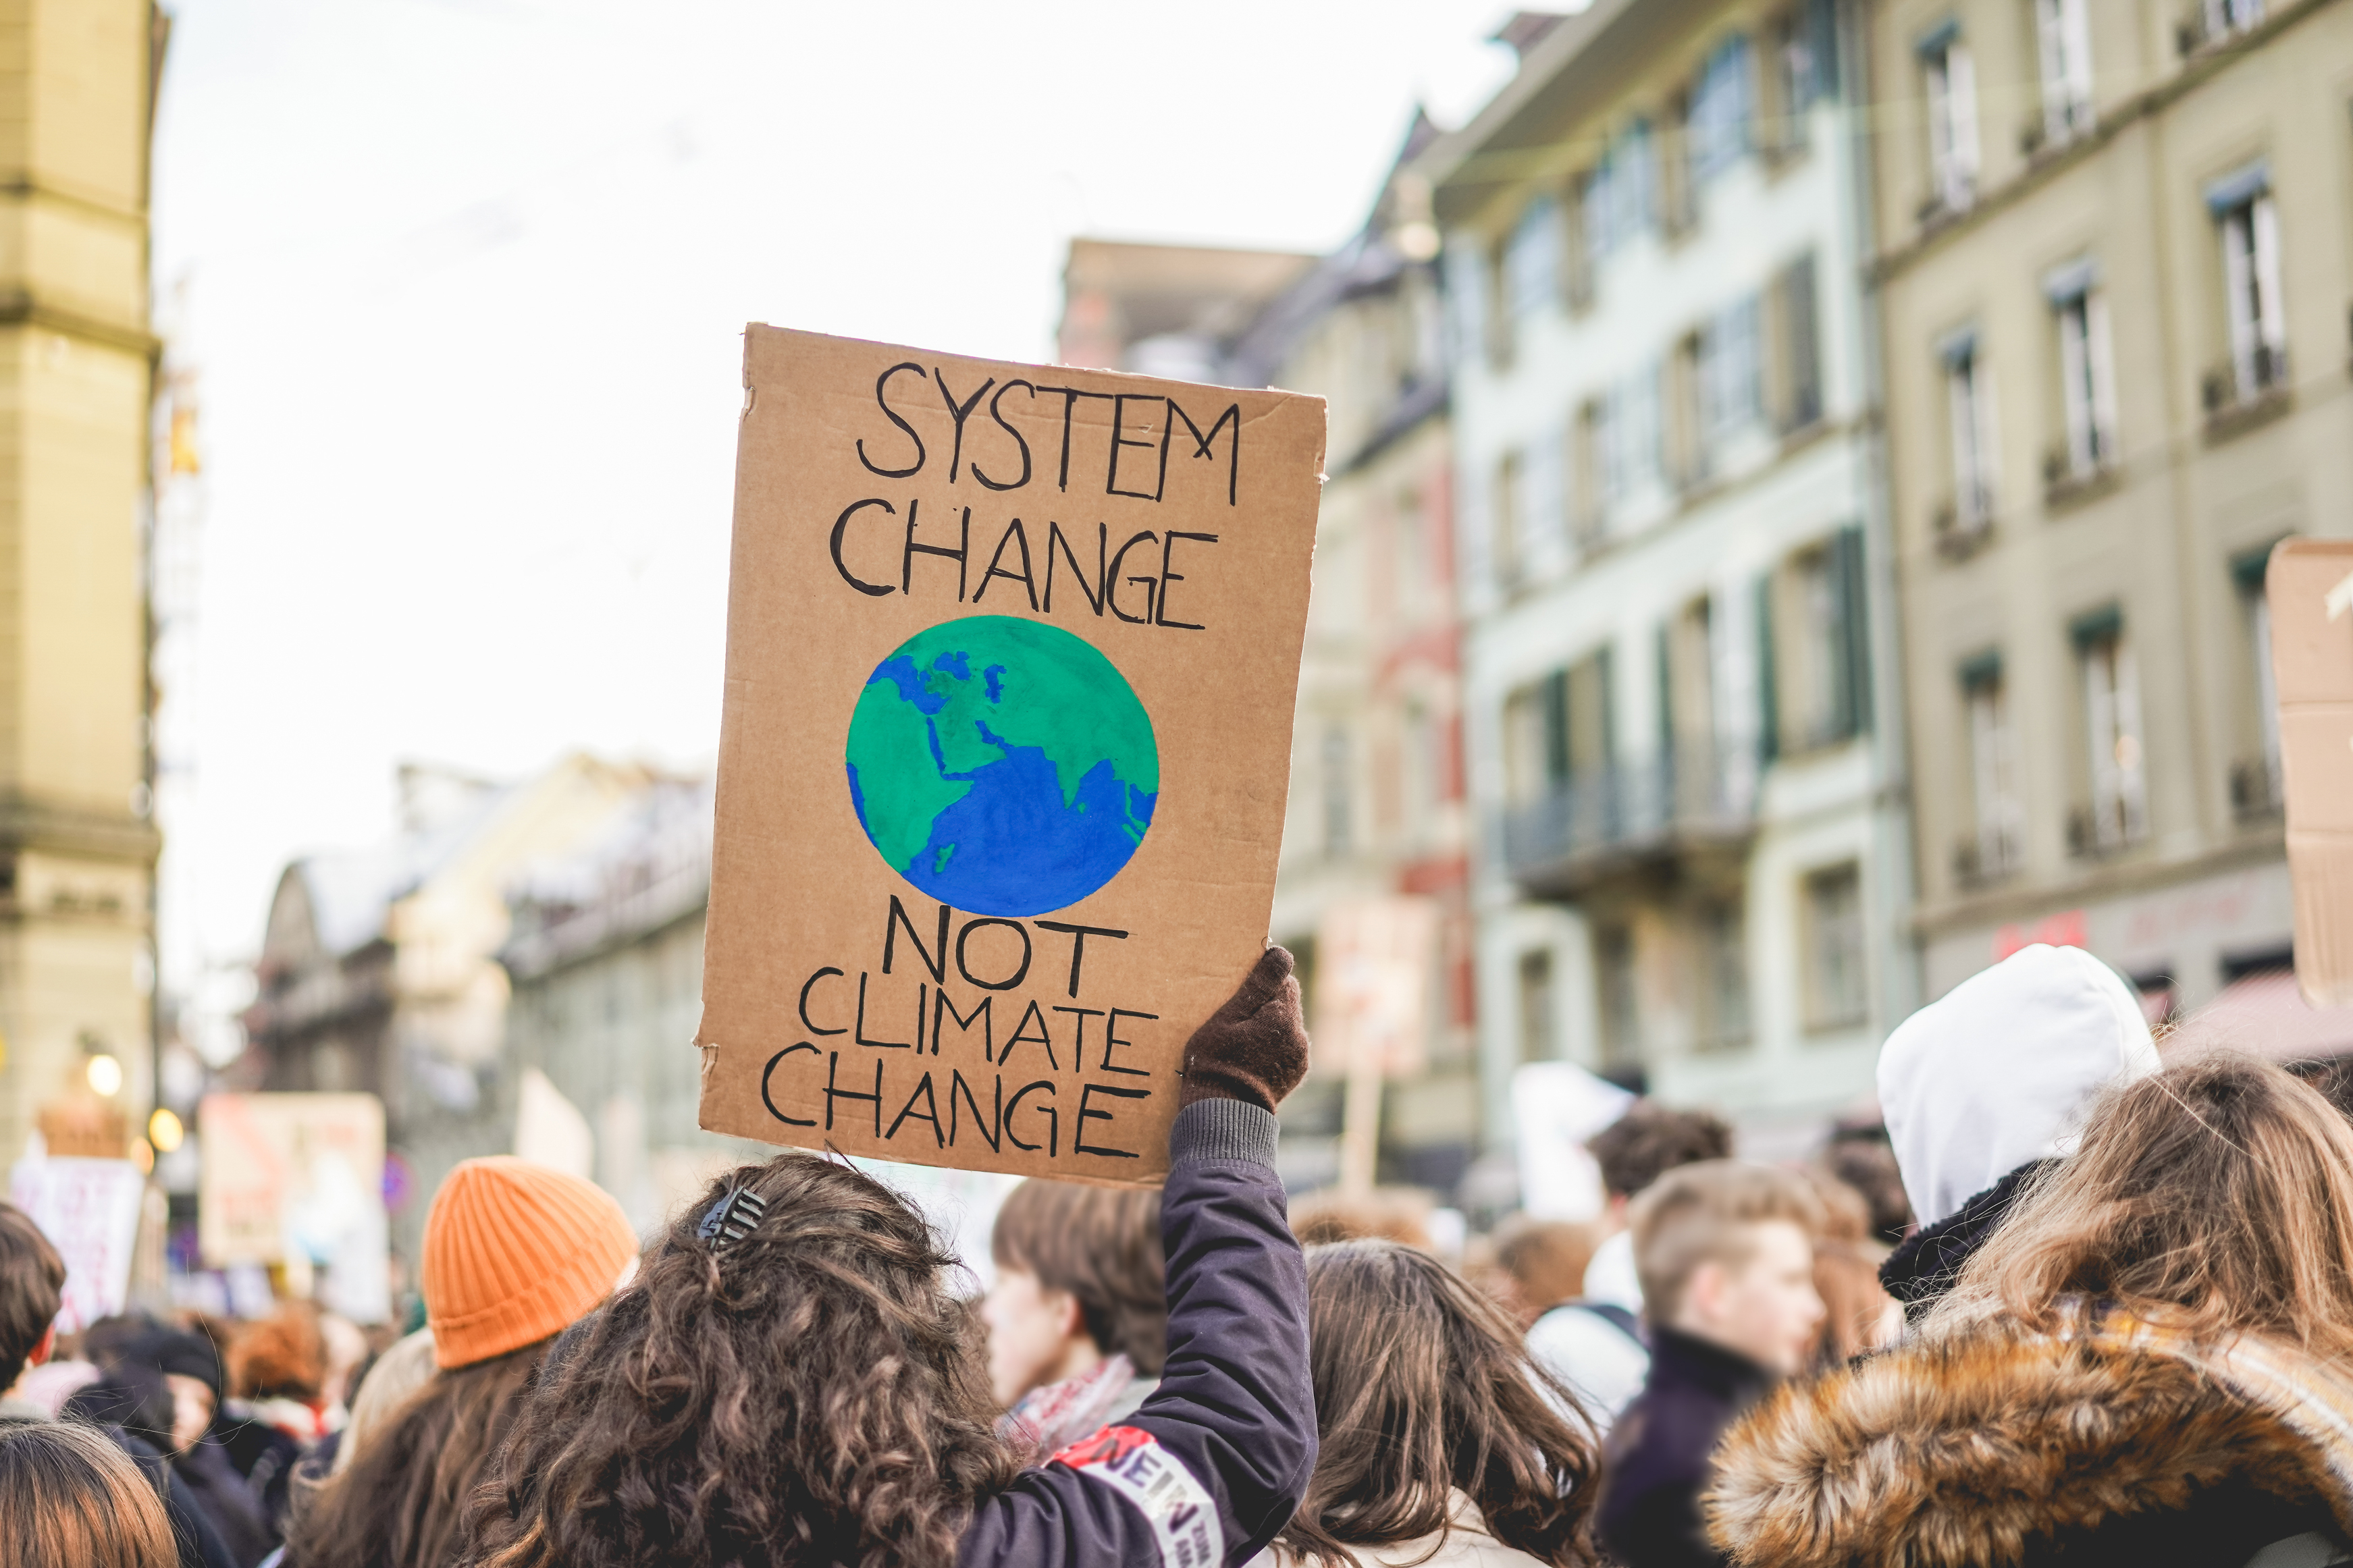 European Perspectives: Meeting climate change commitments